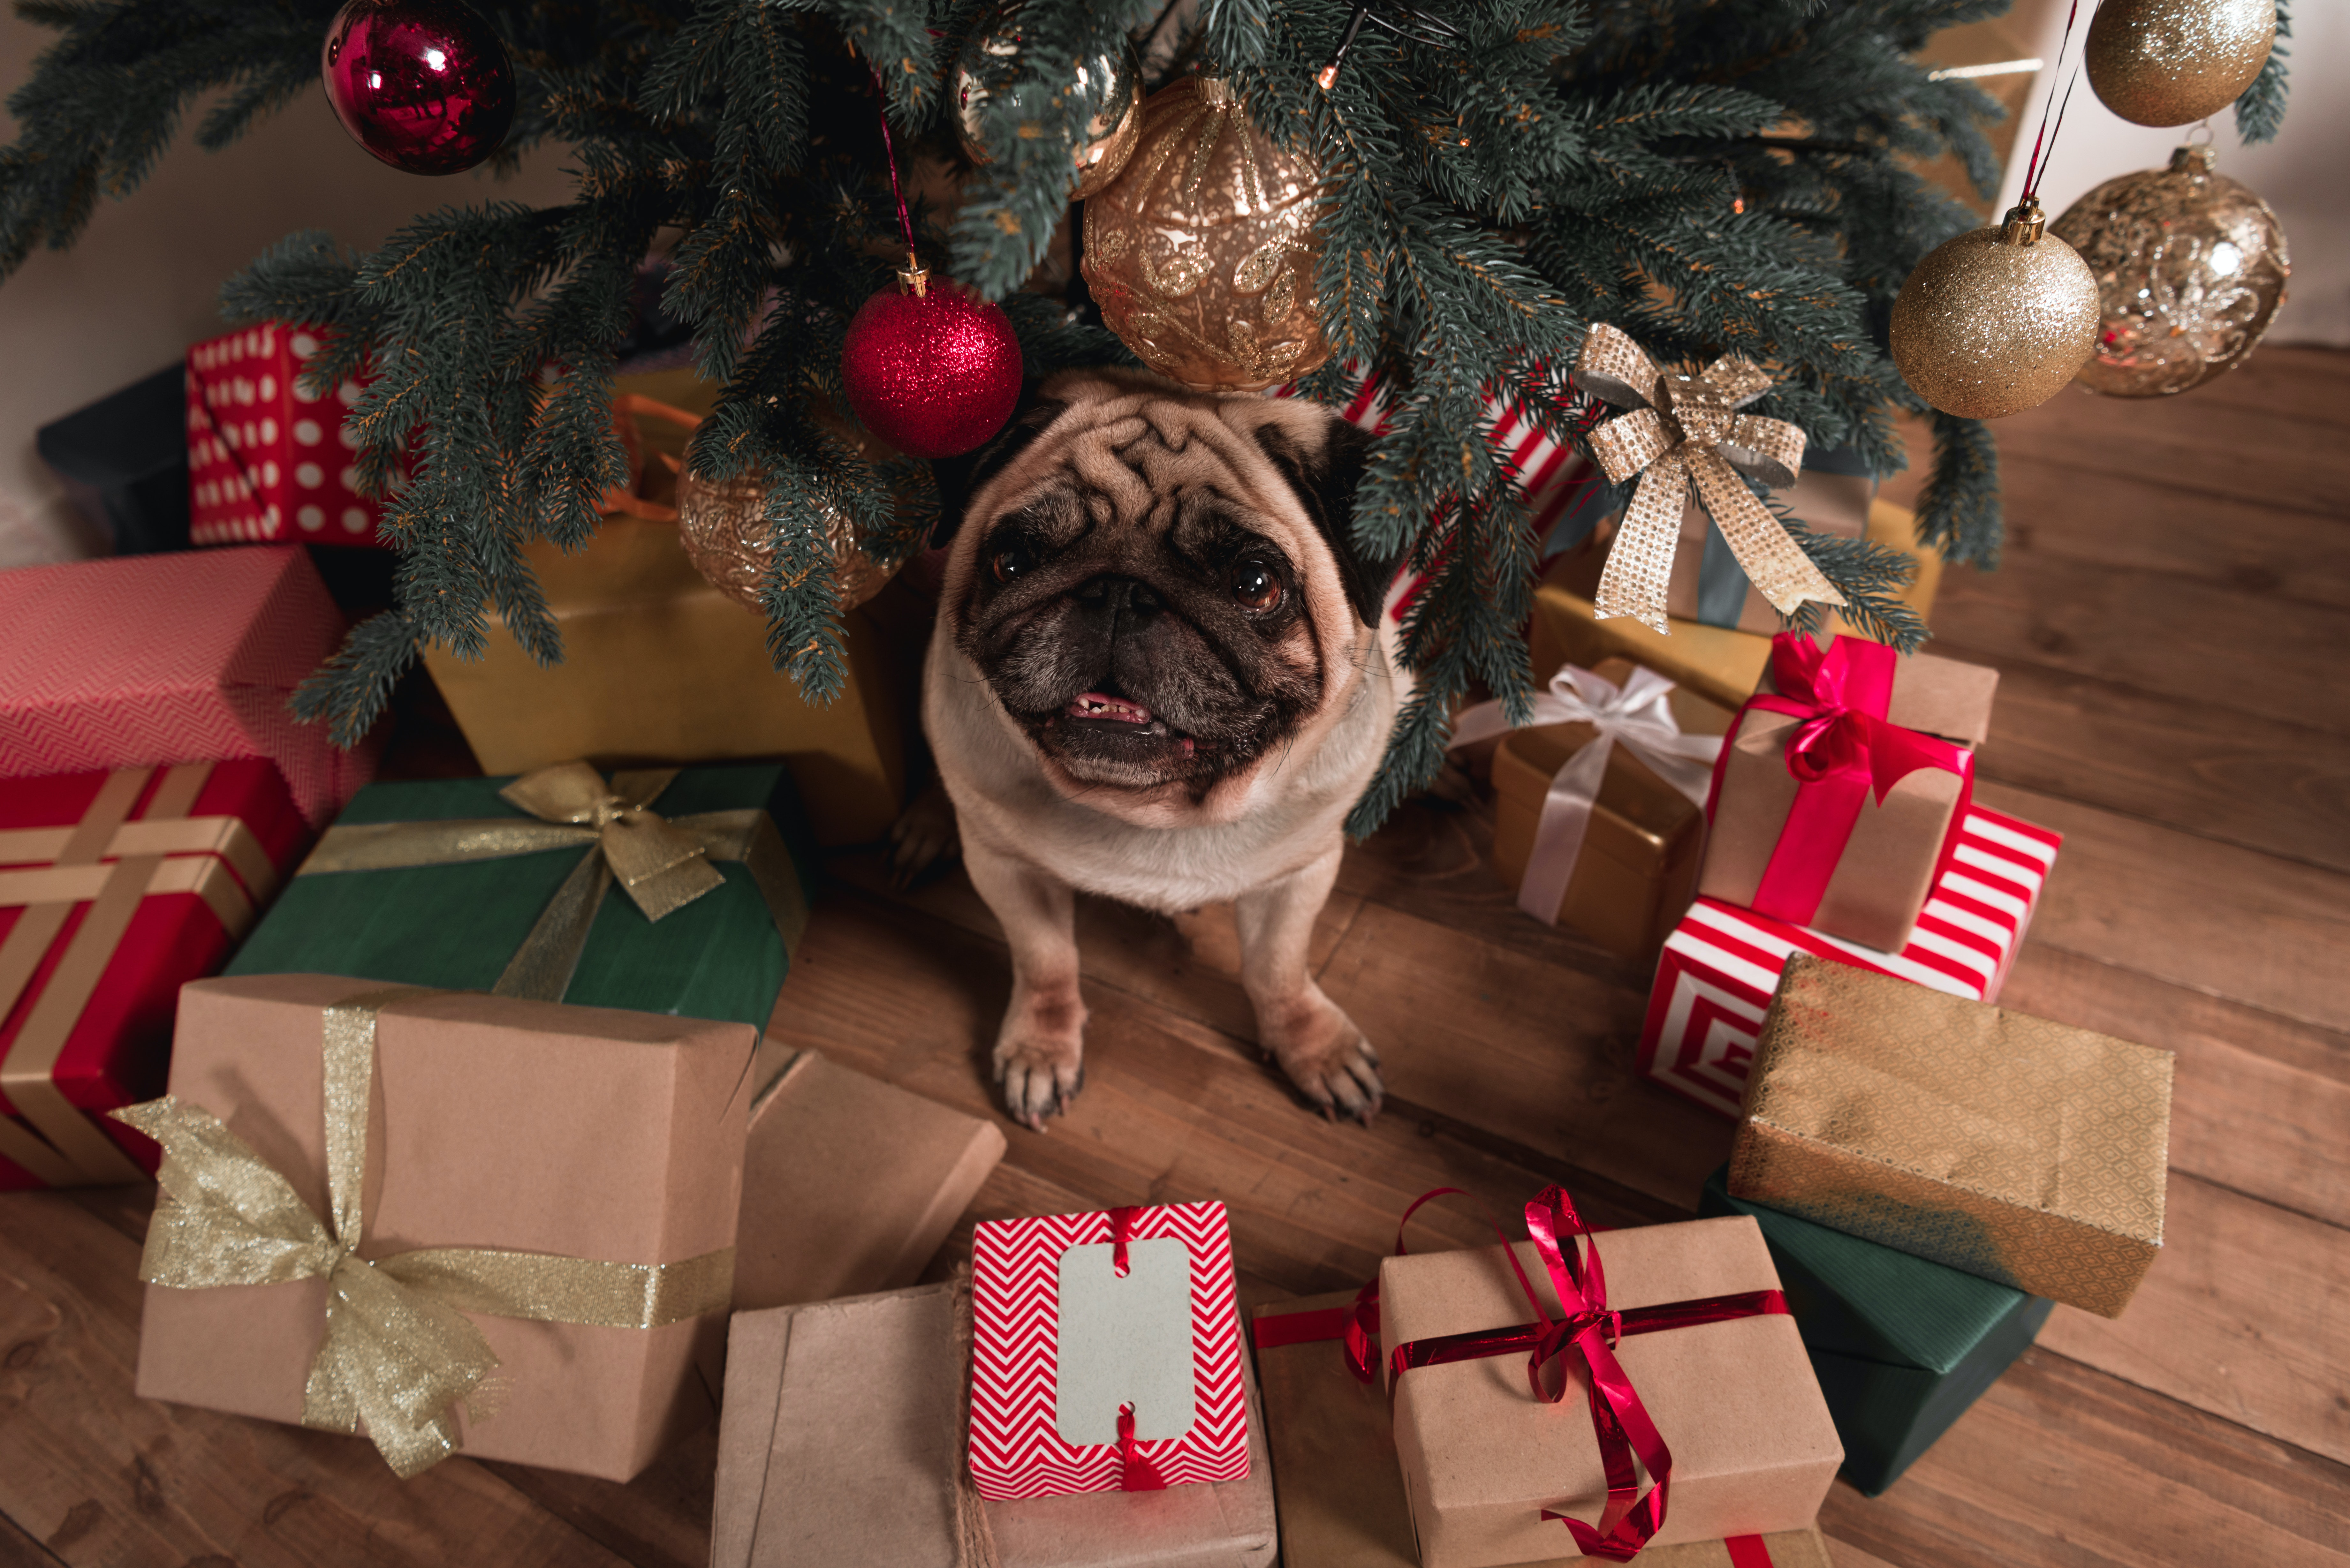 27 Captions For Your Dog Opening Presents On Christmas That Are So Sweet